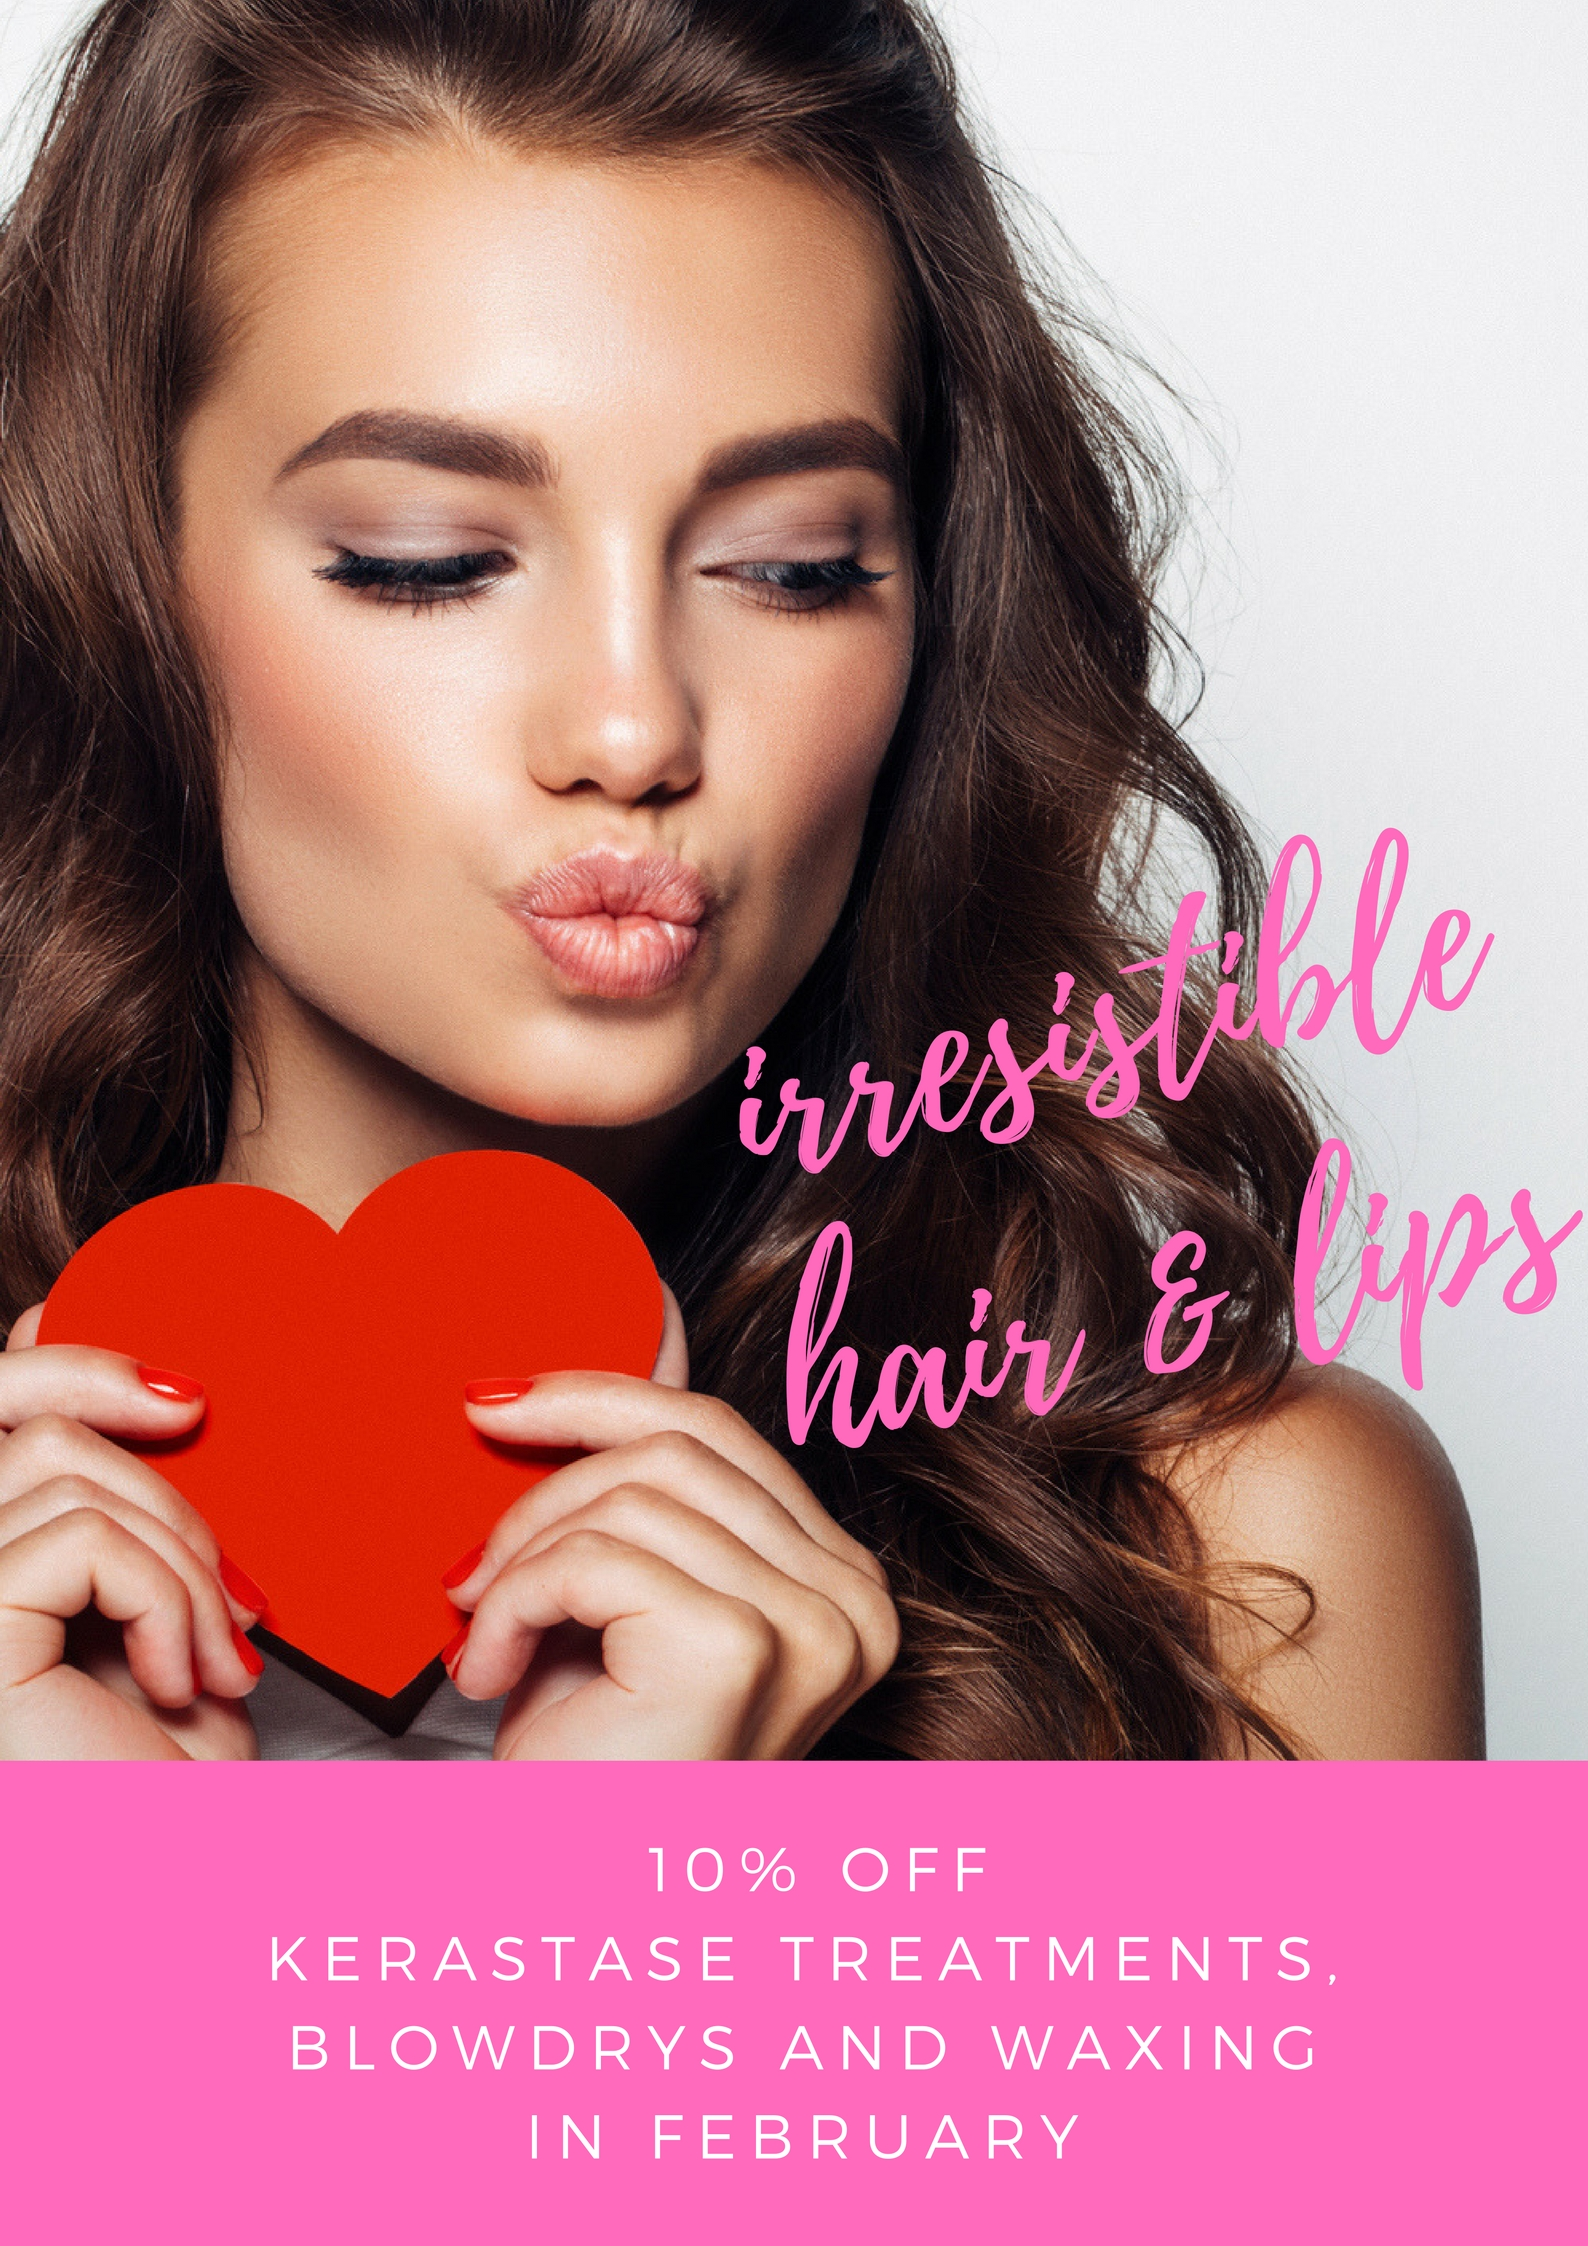 Irresistible hair and lips - February Offer